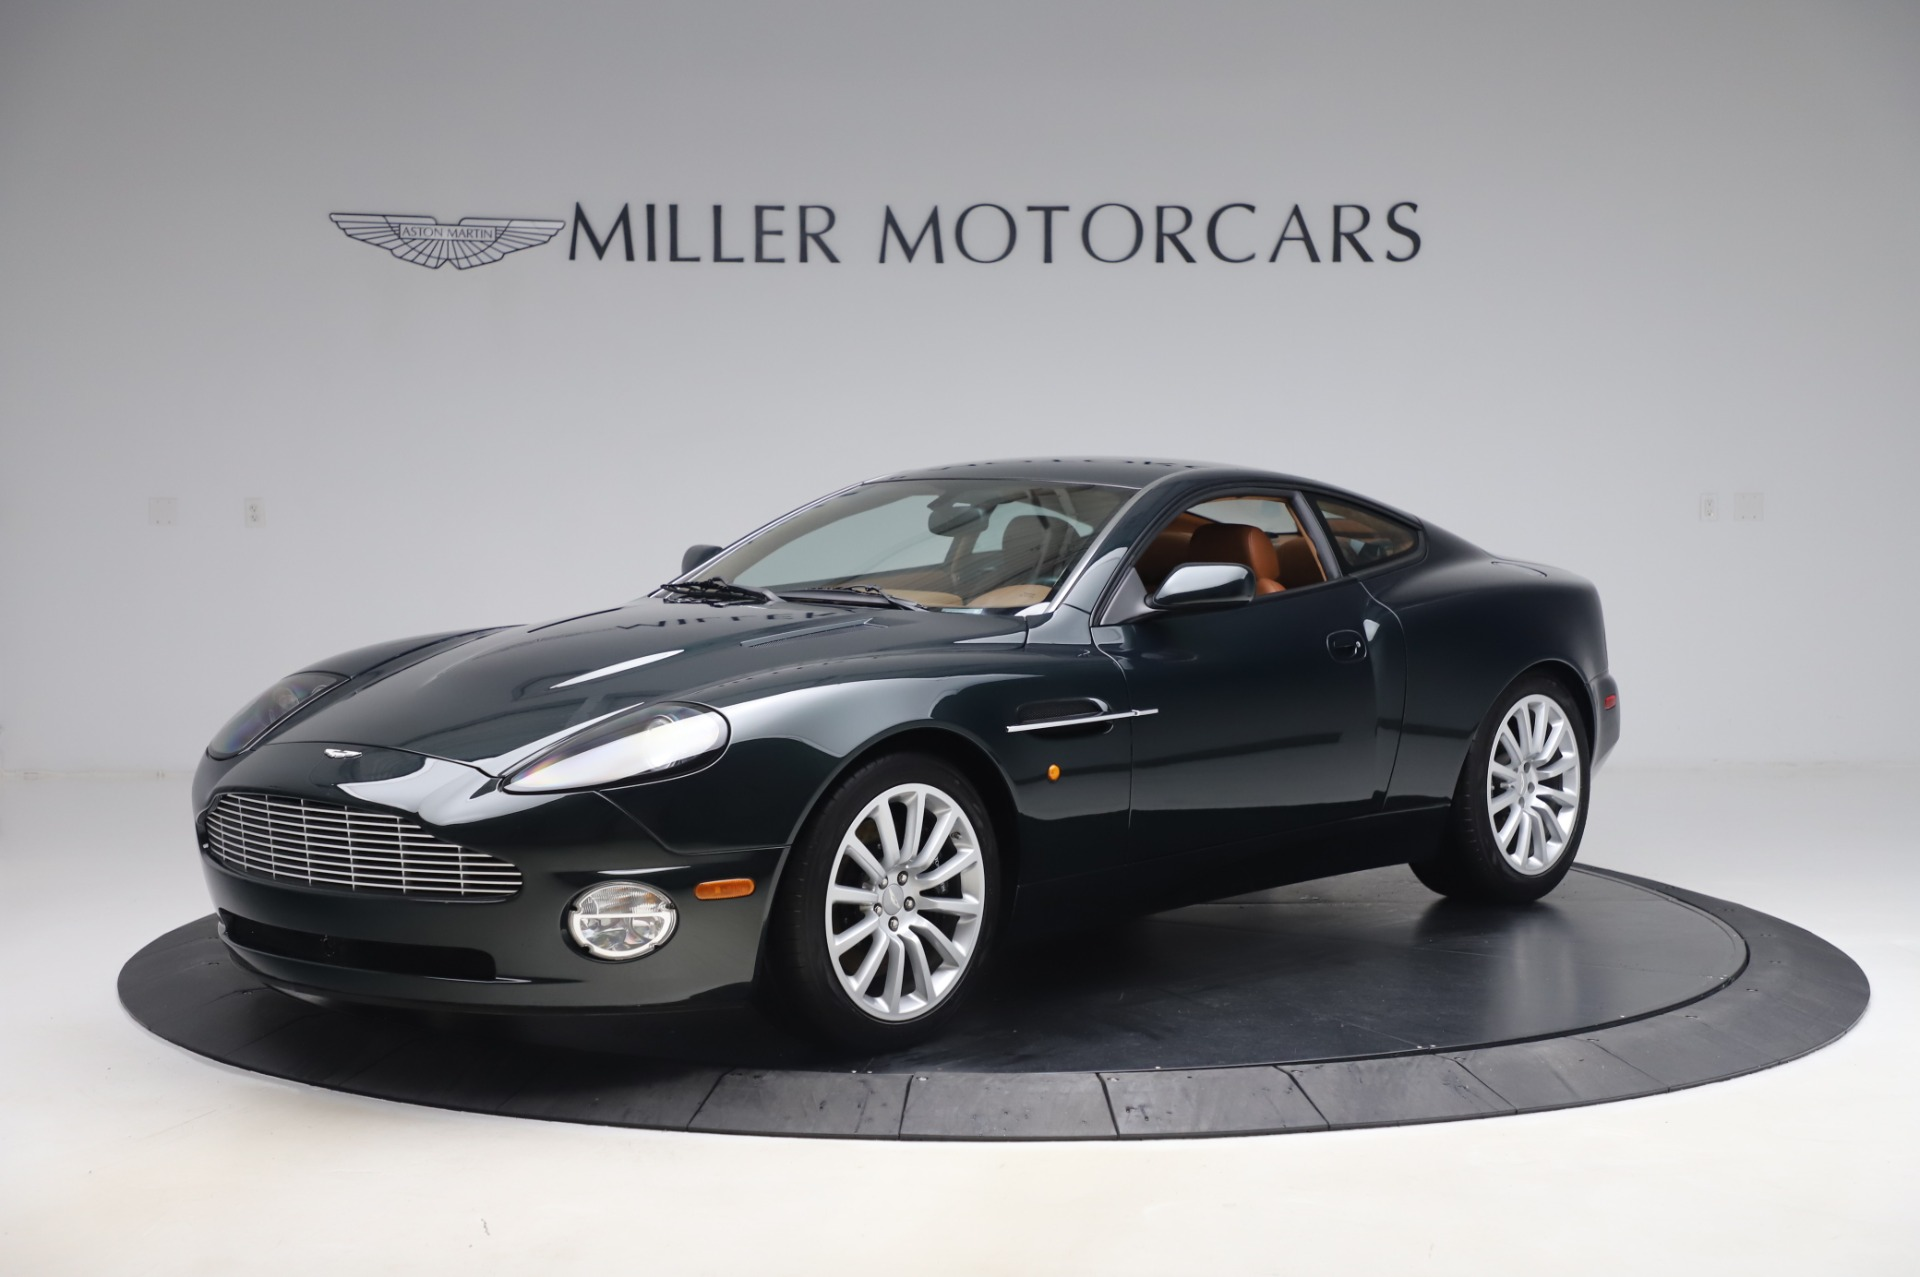 Used 2003 Aston Martin V12 Vanquish Coupe for sale $79,900 at McLaren Greenwich in Greenwich CT 06830 1